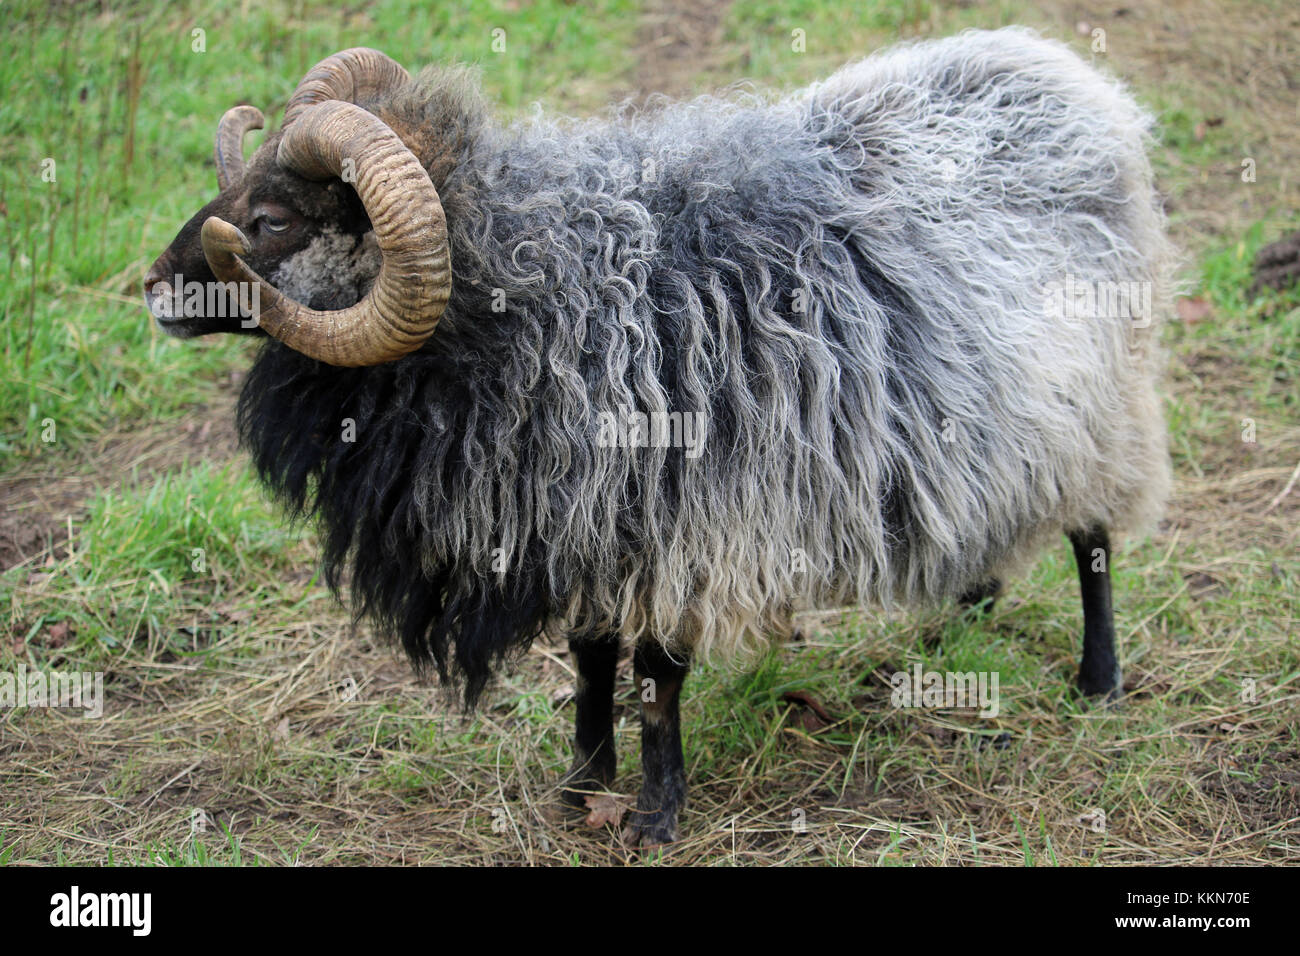 Rare breed sheep in profile with a dark brown head, white nose, black legs, curled horns and a grey woolly grey - Stock Image